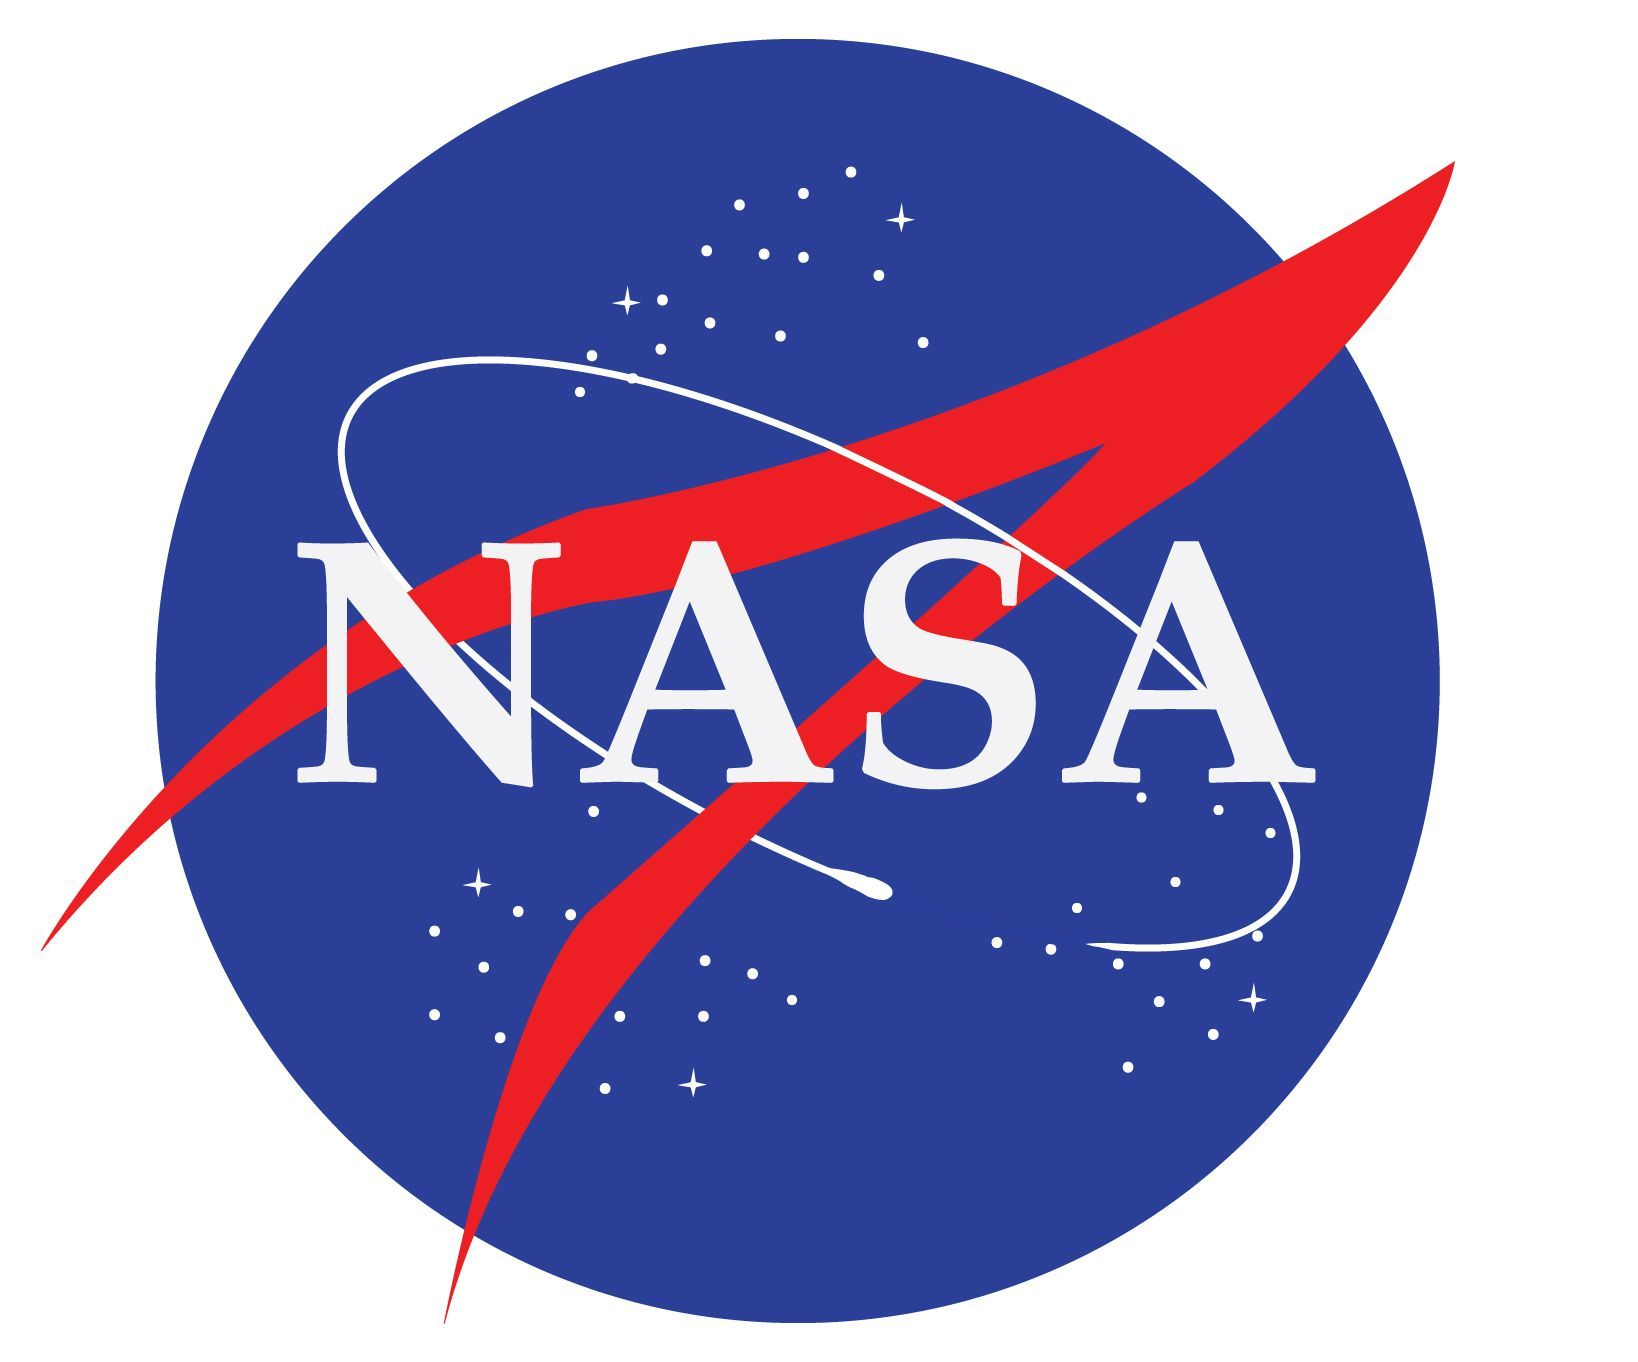 Image Result For Nasa Nasa Nasa Logo Space Nasa